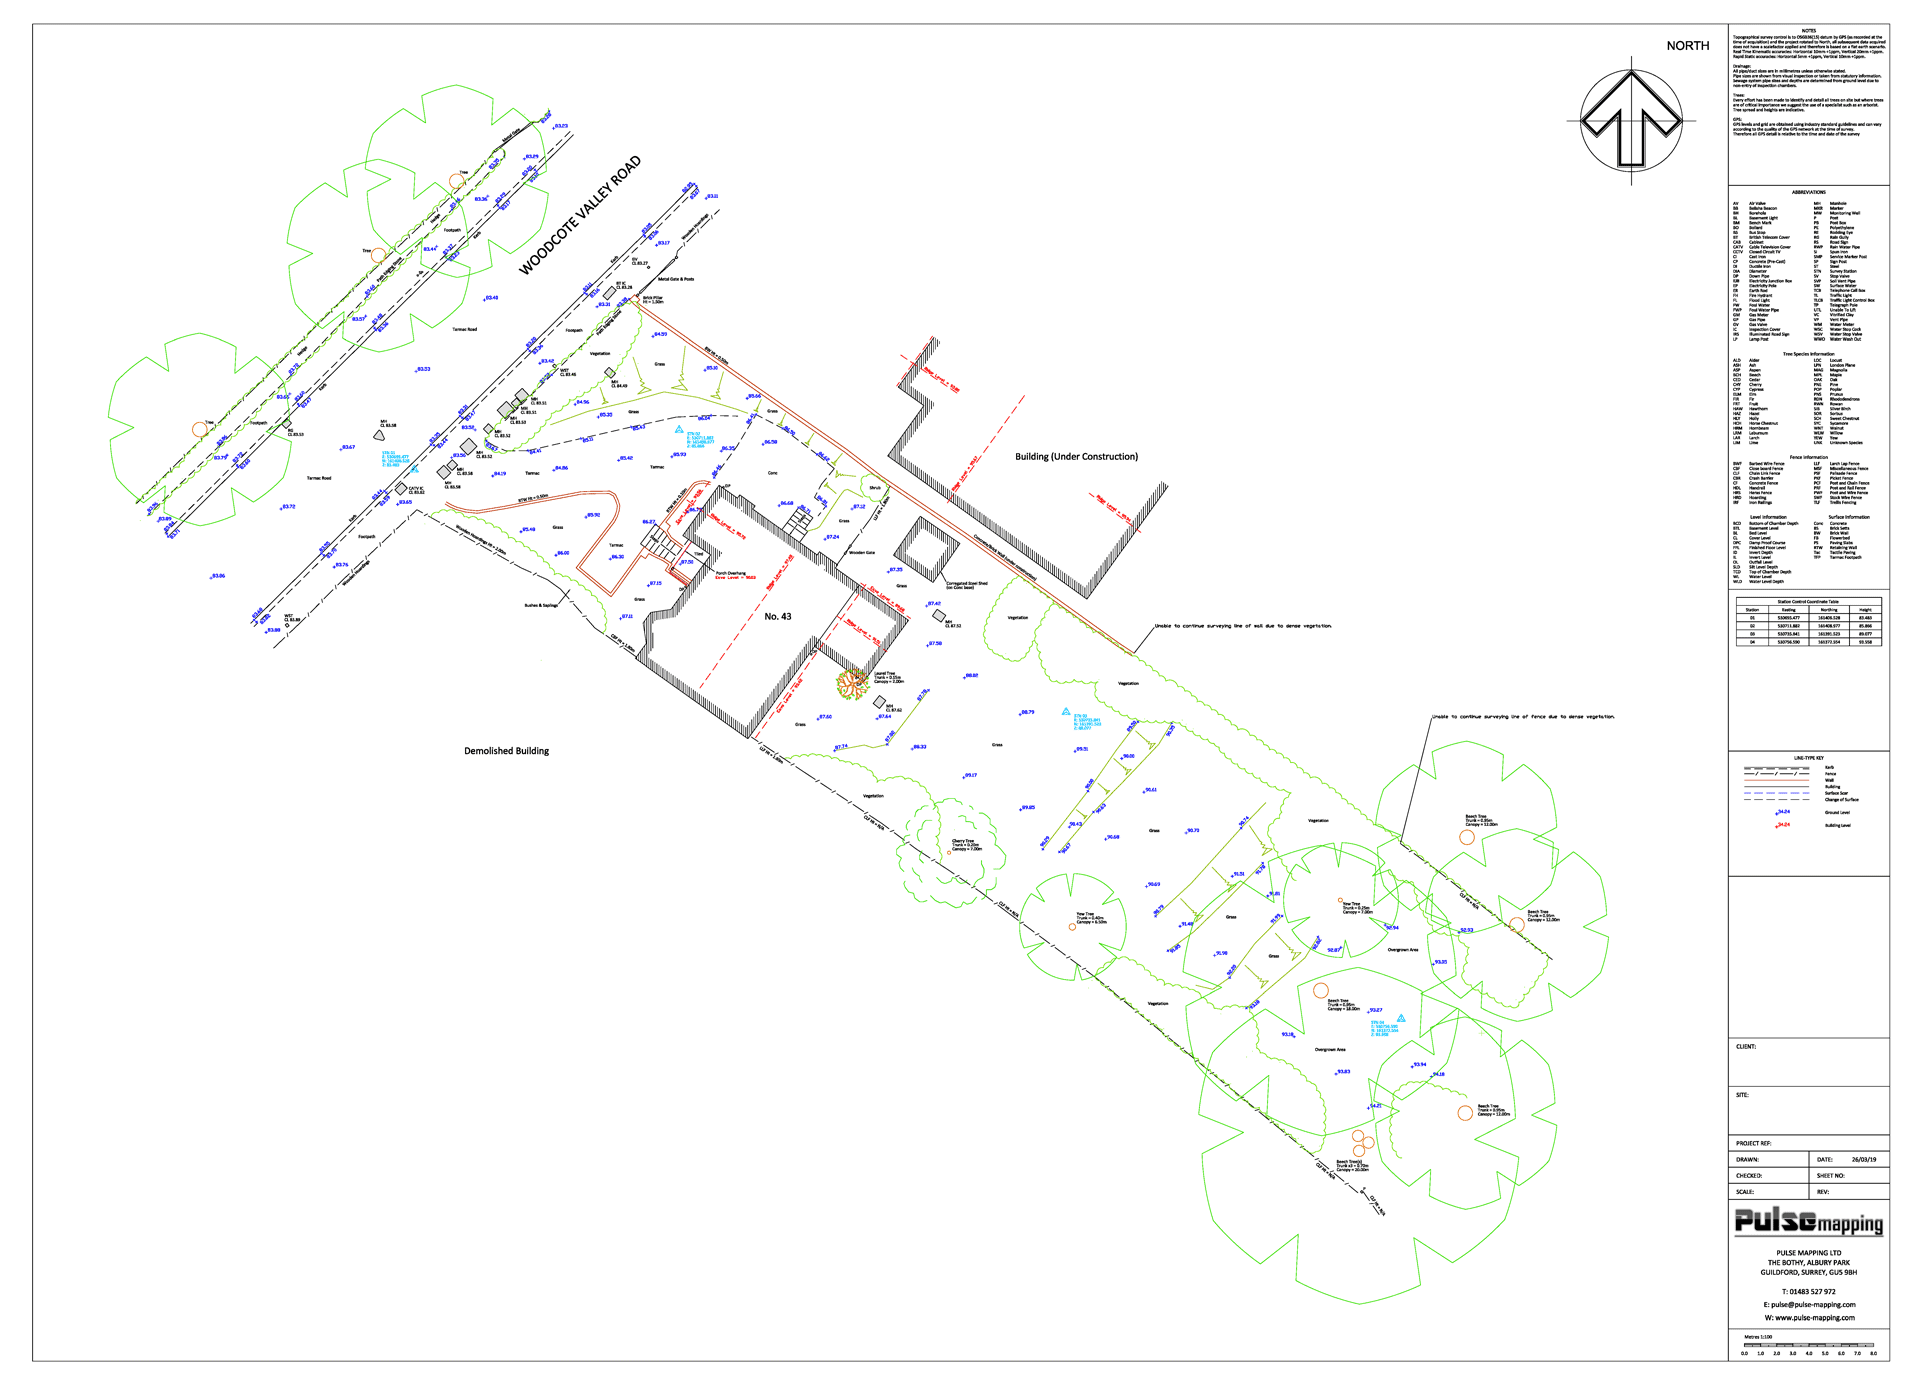 Topo survey of a residential property